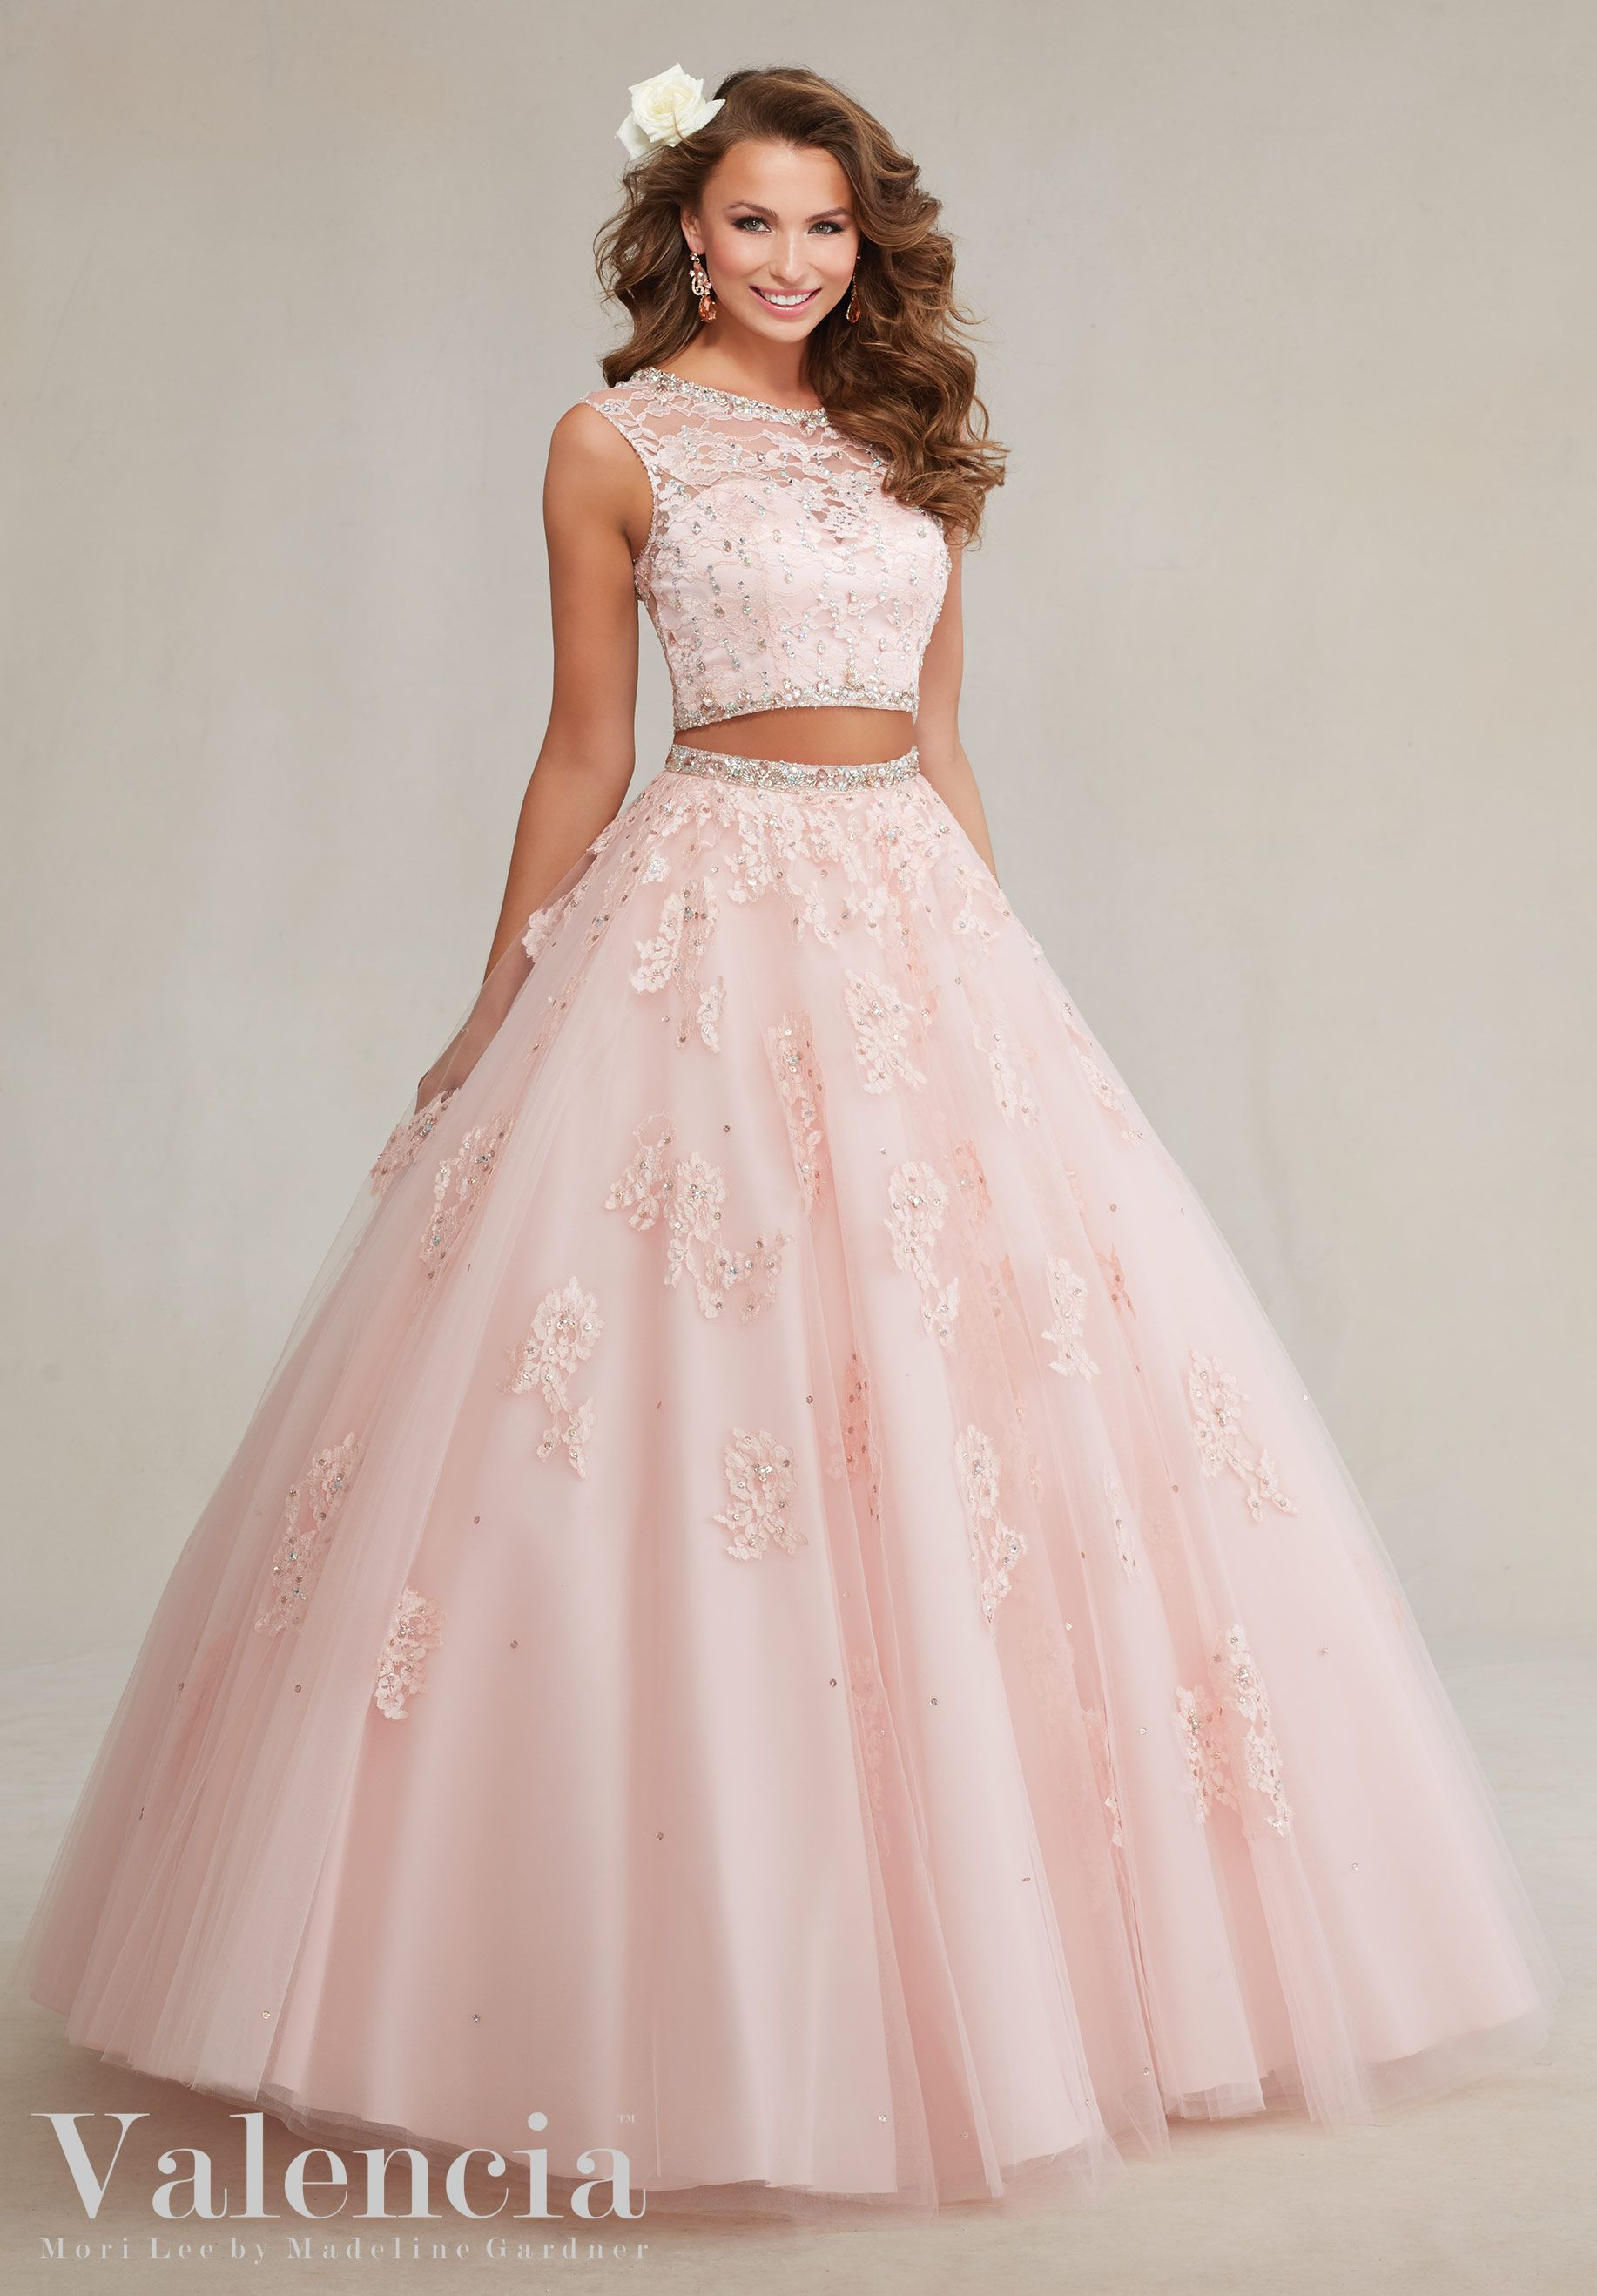 68642c85cc2 Quinceanera Dress 89088 Two-Piece Tulle Ball Gown with Beaded Lace Appliqu s